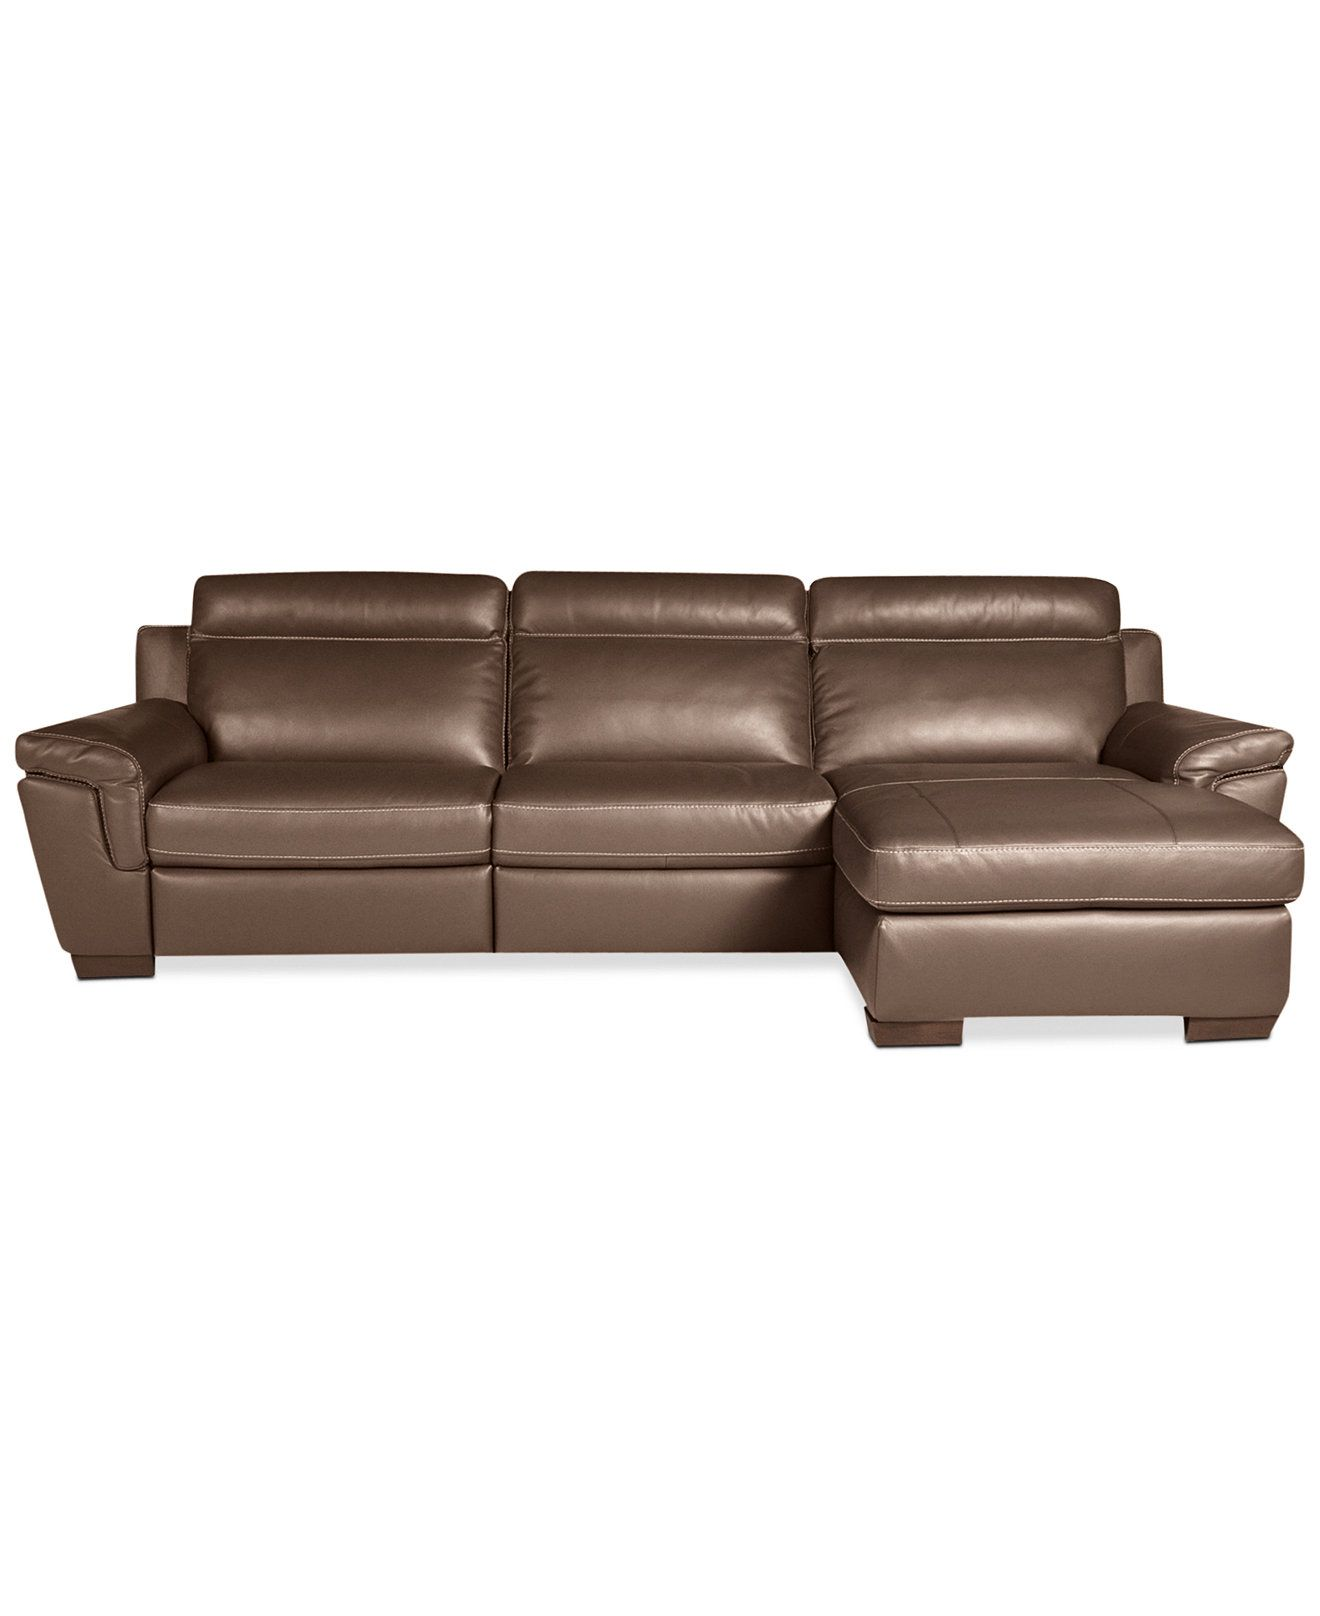 alessandro leather power motion sofa reviews lazy boy metro review julius 3 piece chaise sectional chair armless and lounge couches sofas furniture macy s